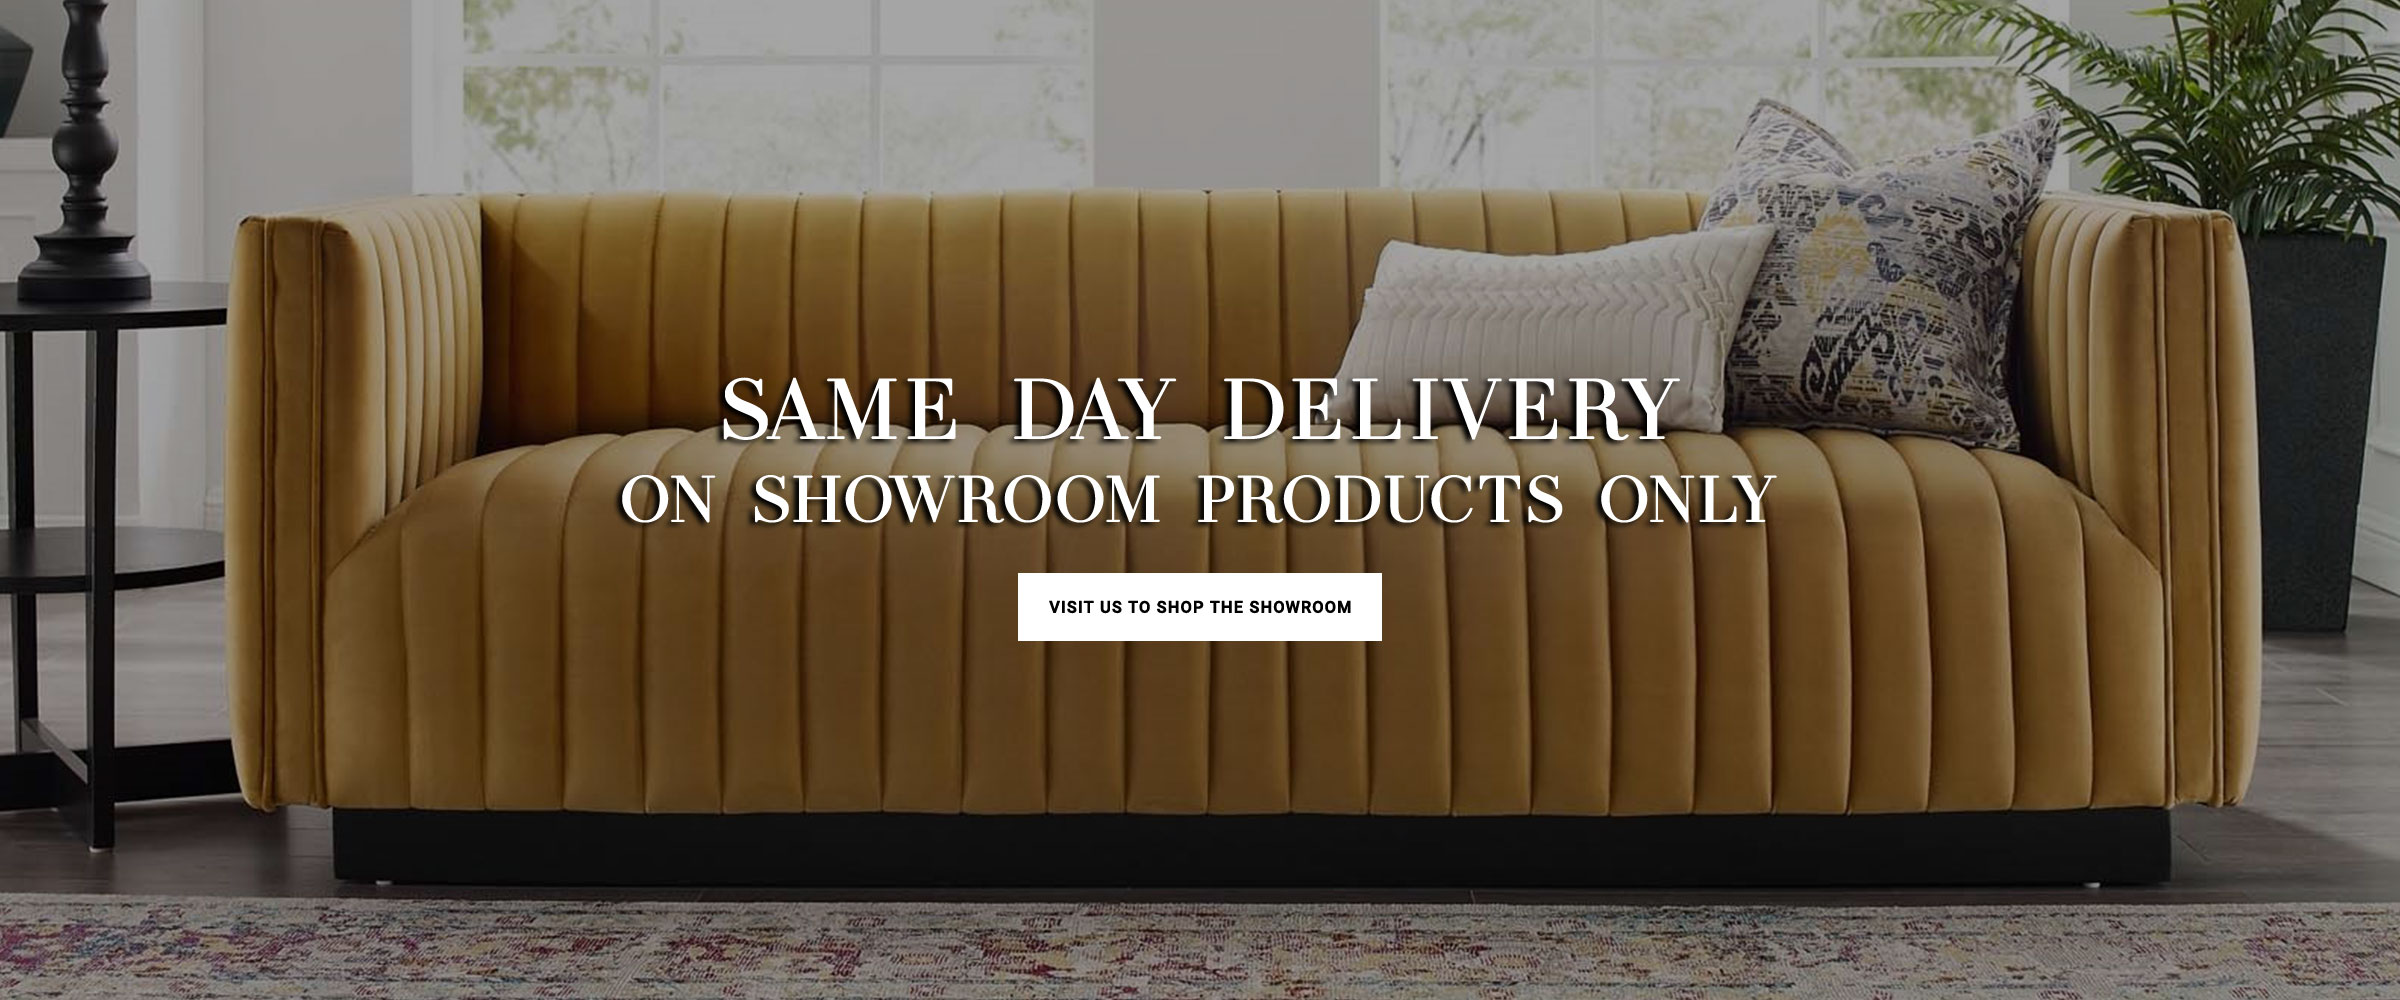 Same Day Delivery on Showroom Products